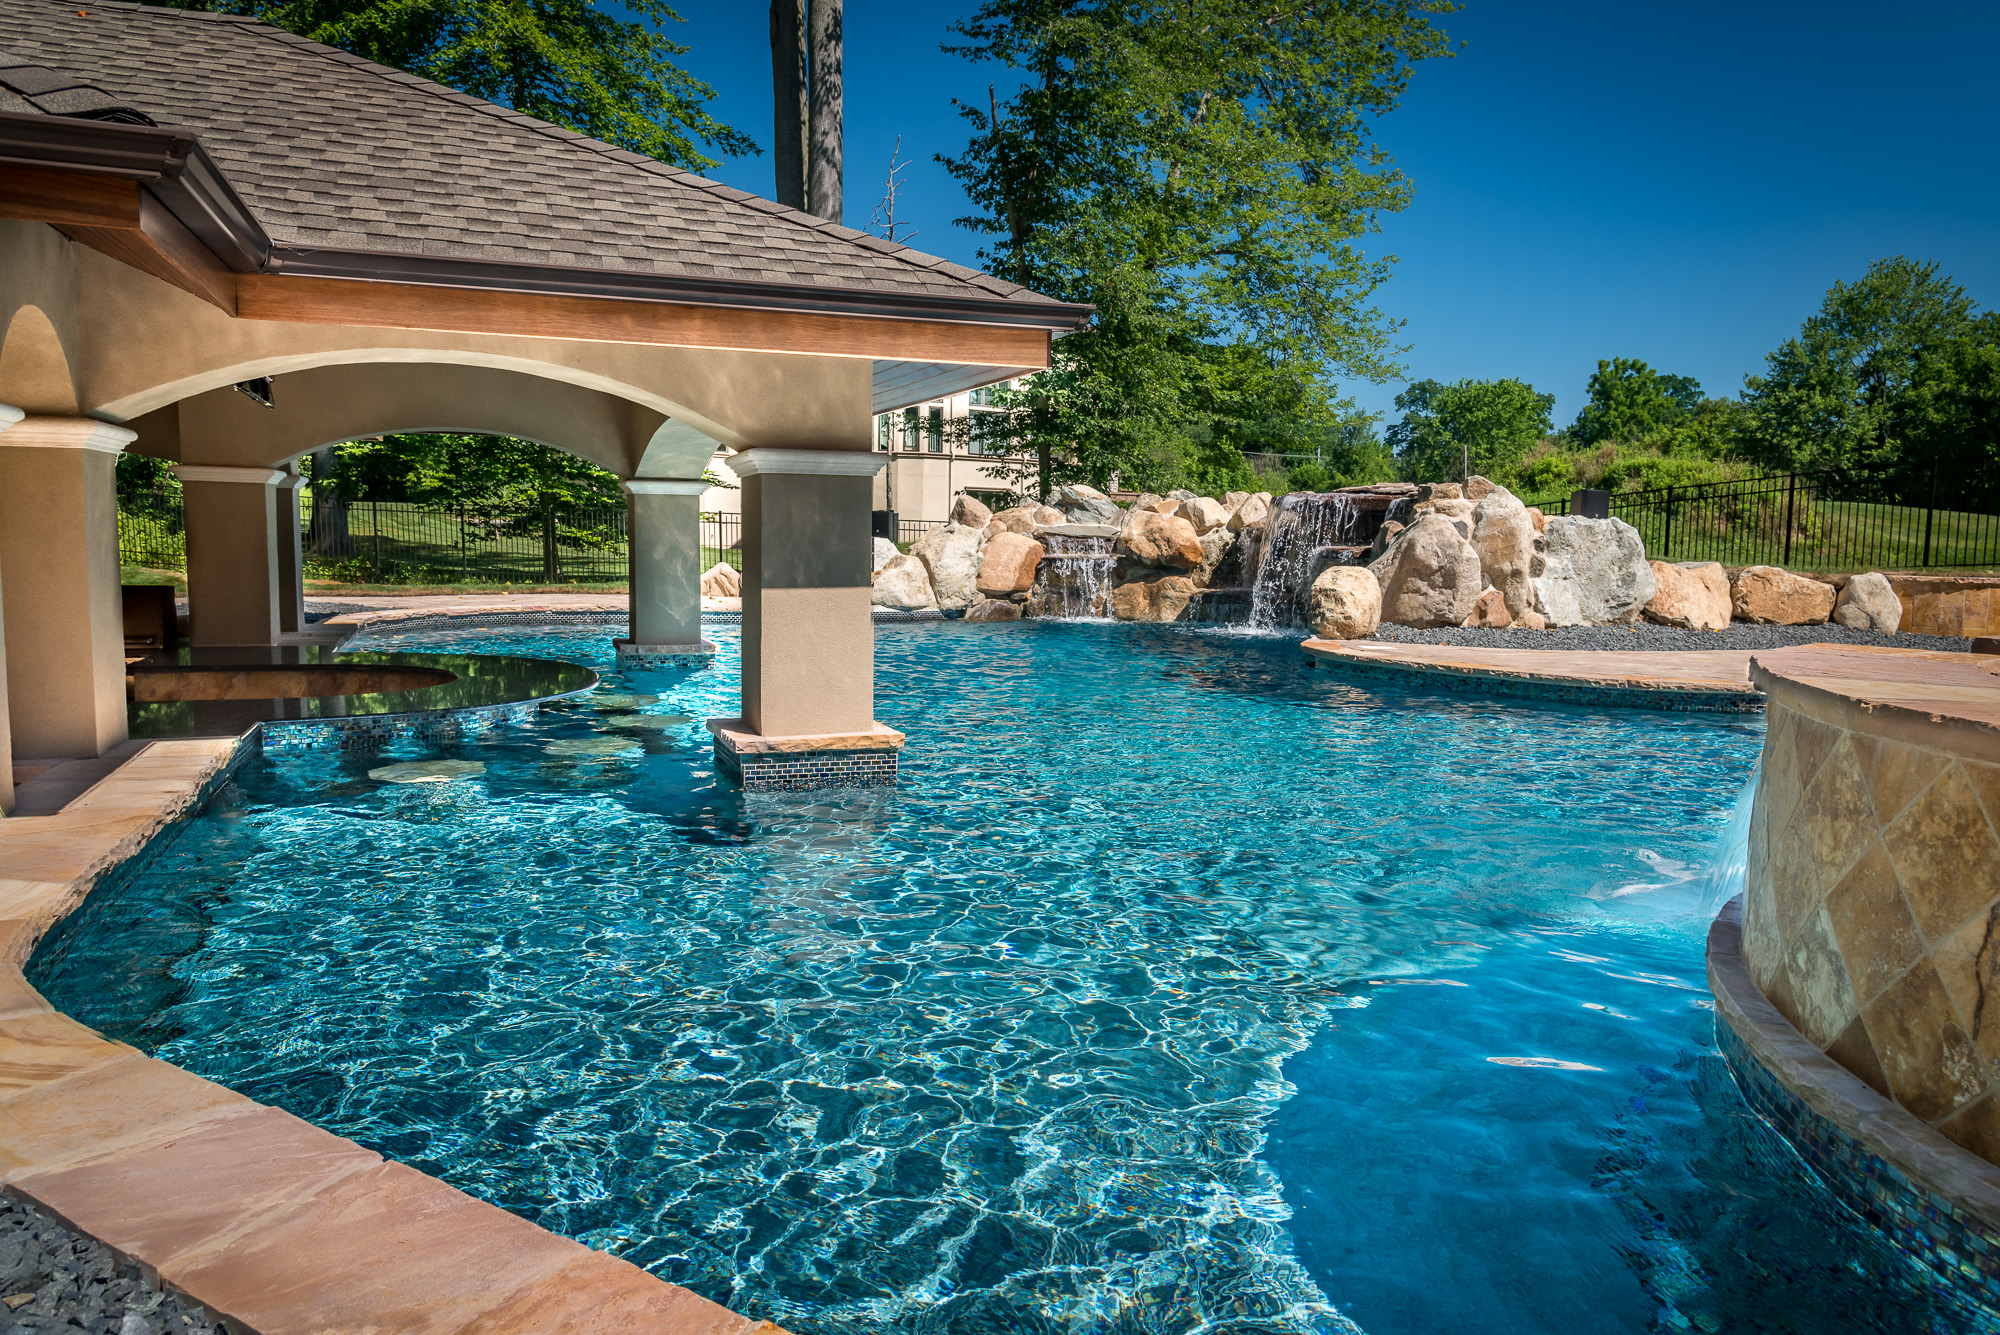 Holmdel nj custom inground swimming pool design for Custom swimming pool designs